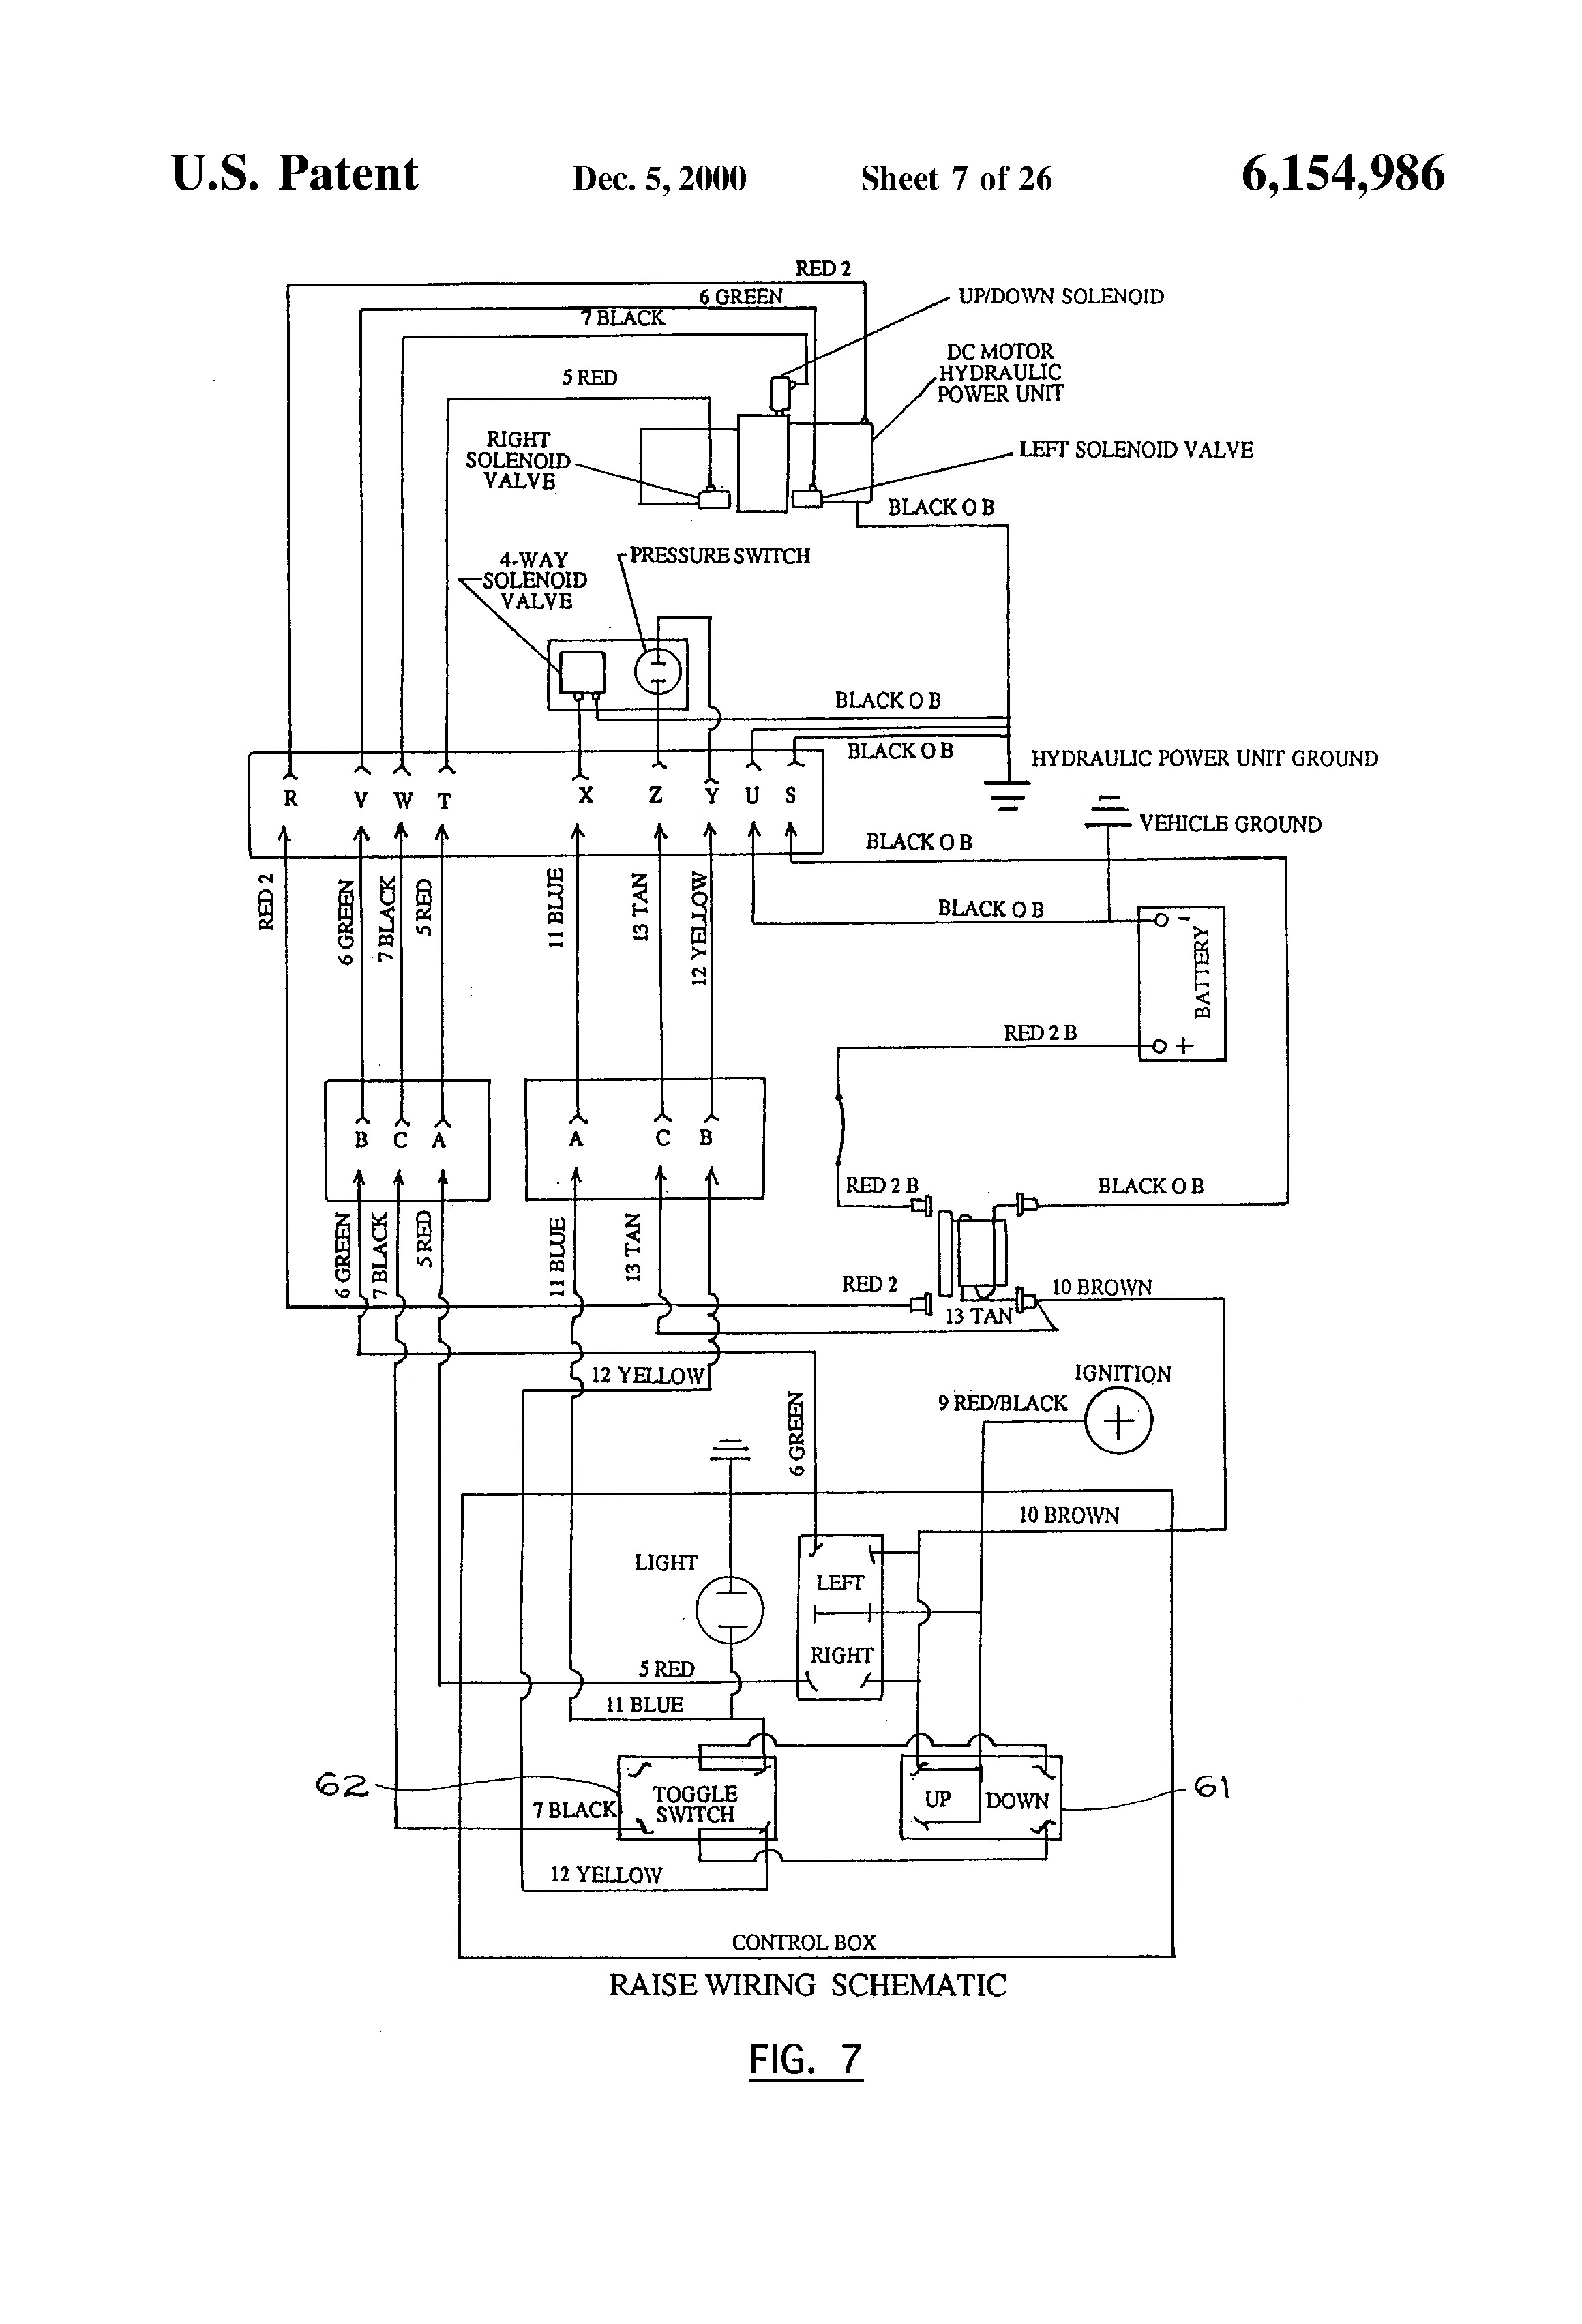 Minute Mount Plow Wiring Diagram from schematron.org